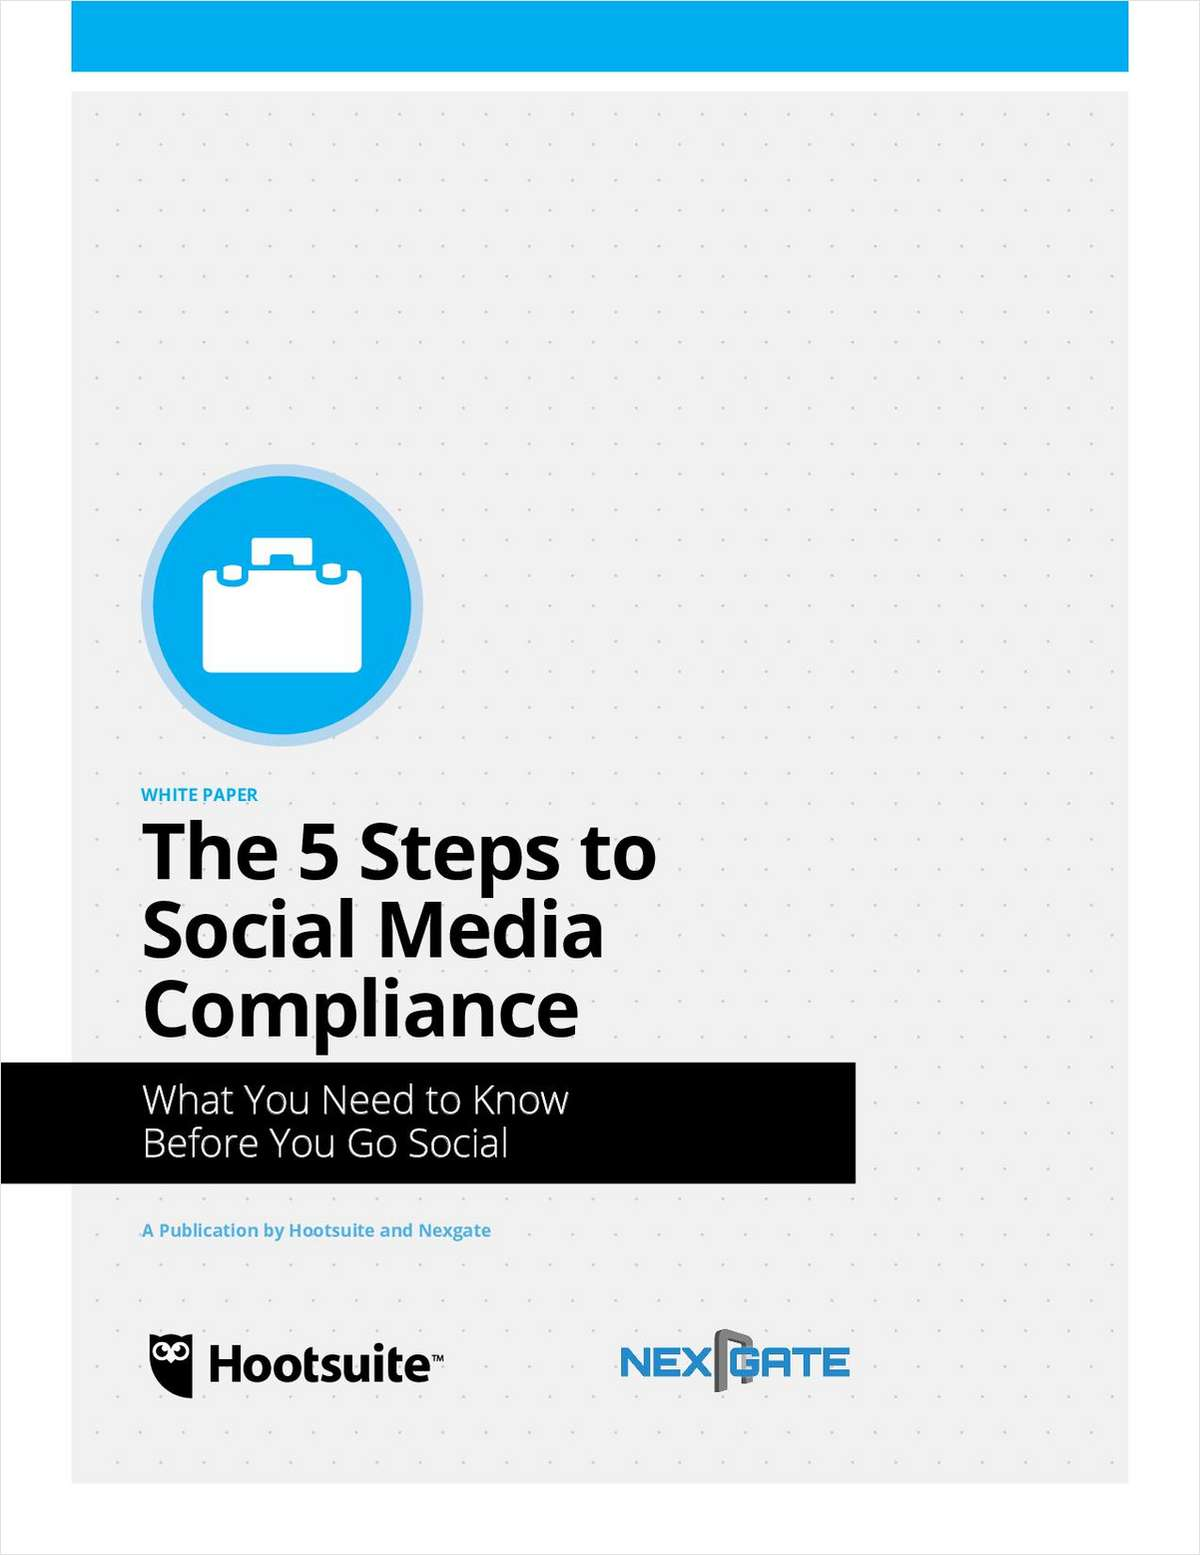 The Five Steps to Social Media Compliance